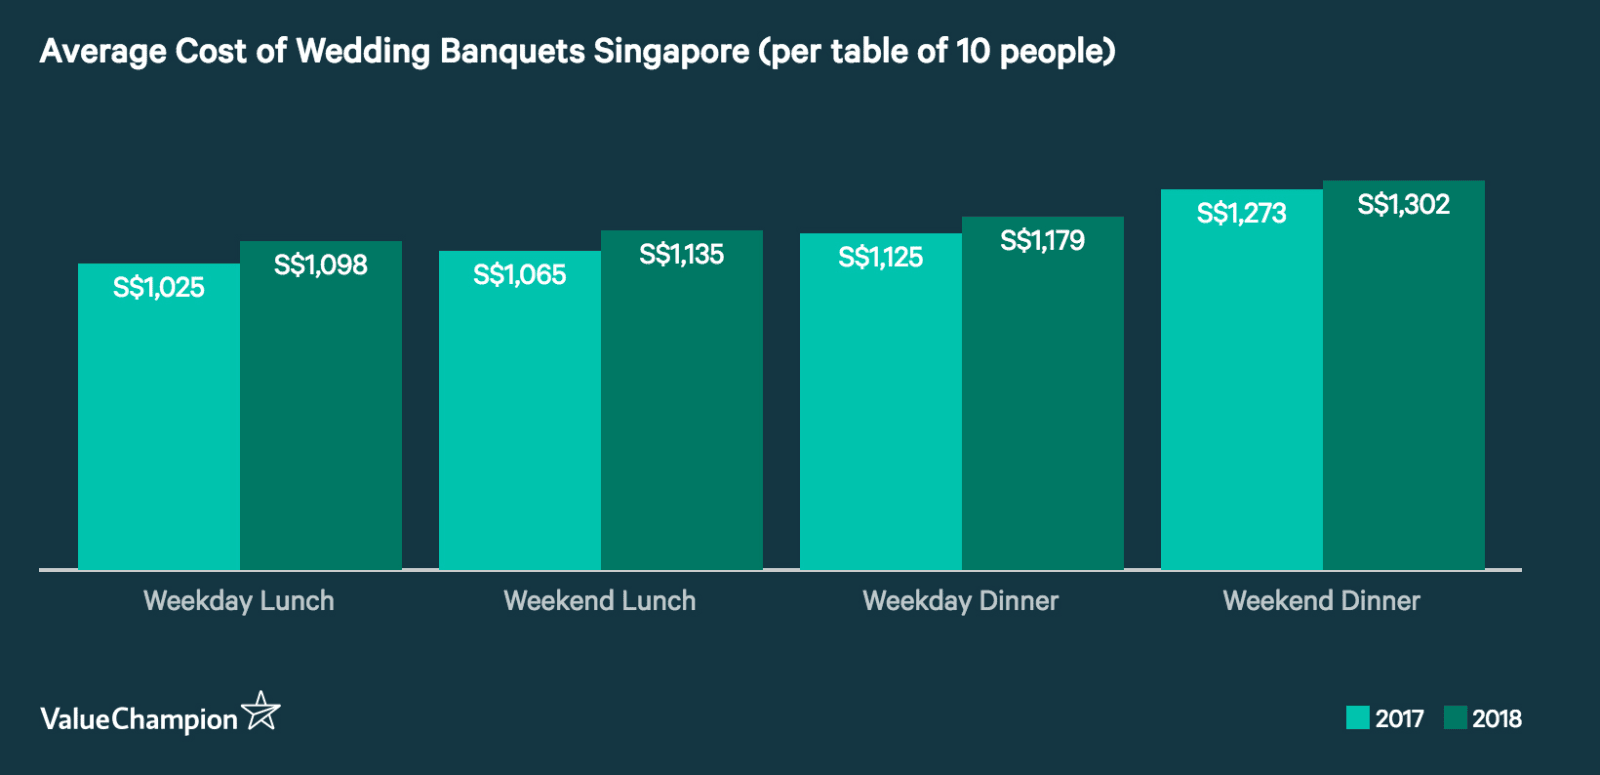 Average Cost of Wedding Banquets Singapore